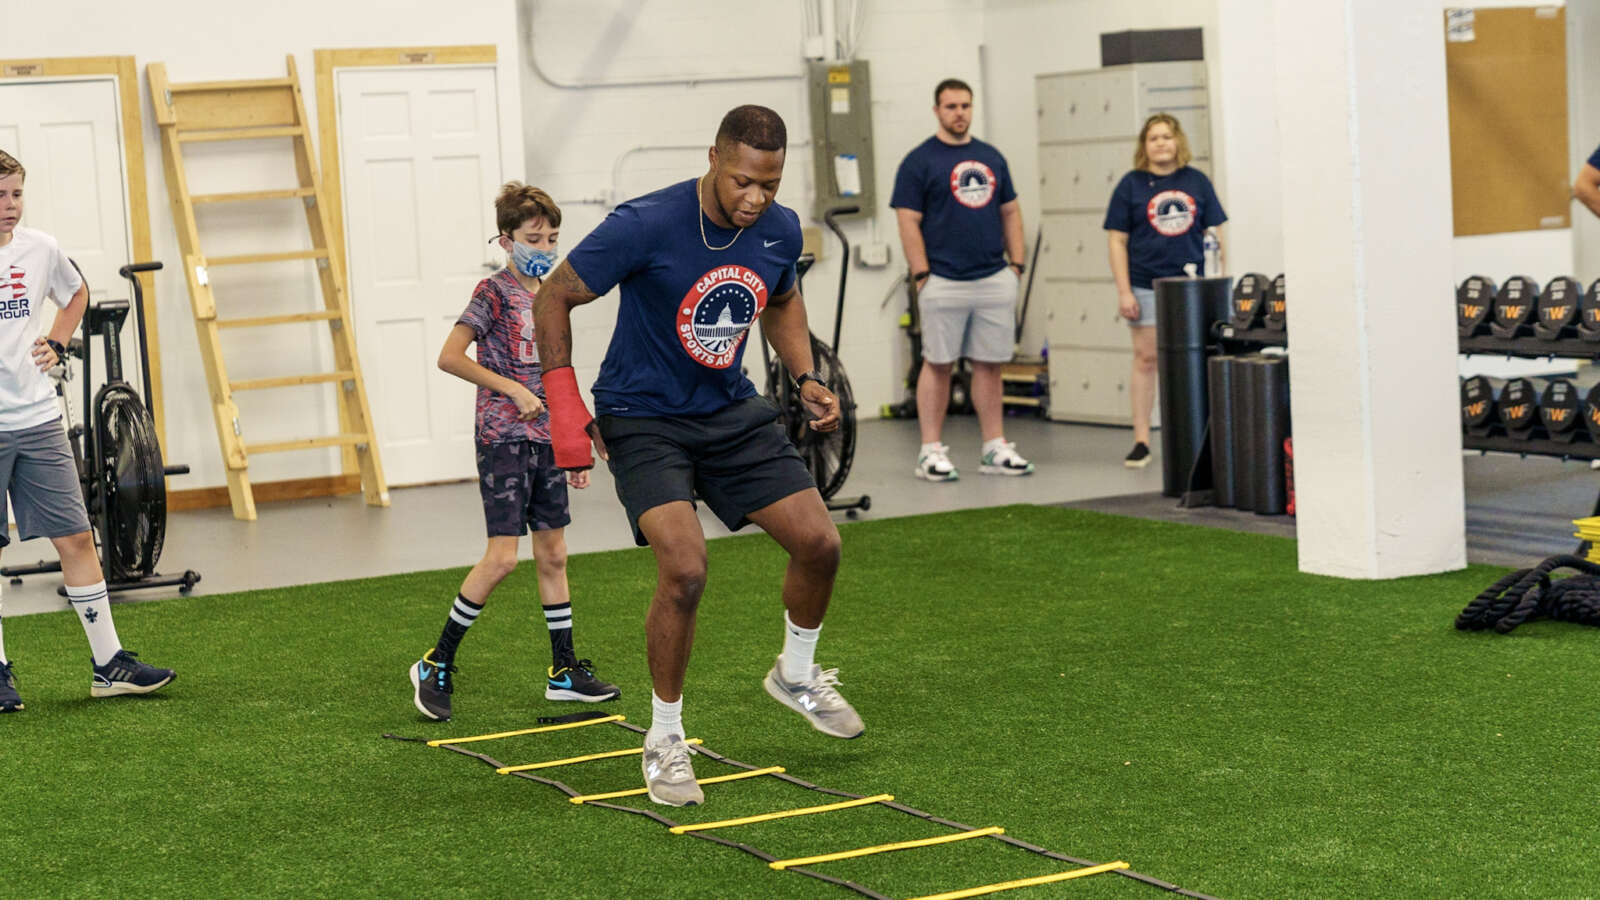 Student-Athlete Training Facility Opens in Bailey's Crossroads